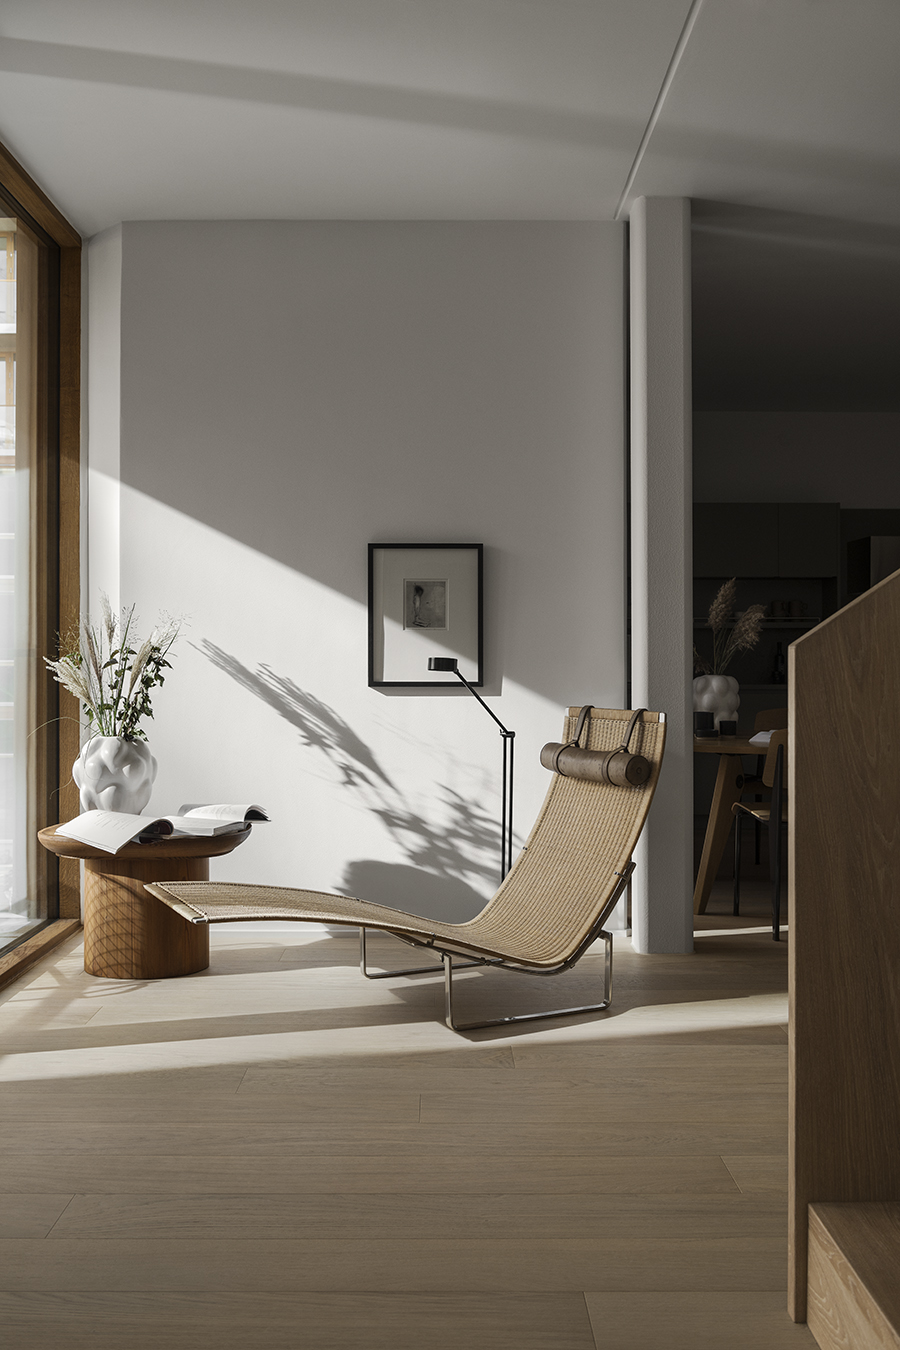 79 & Park with Lotta Agaton interiors via Ollie & Sebs Haus